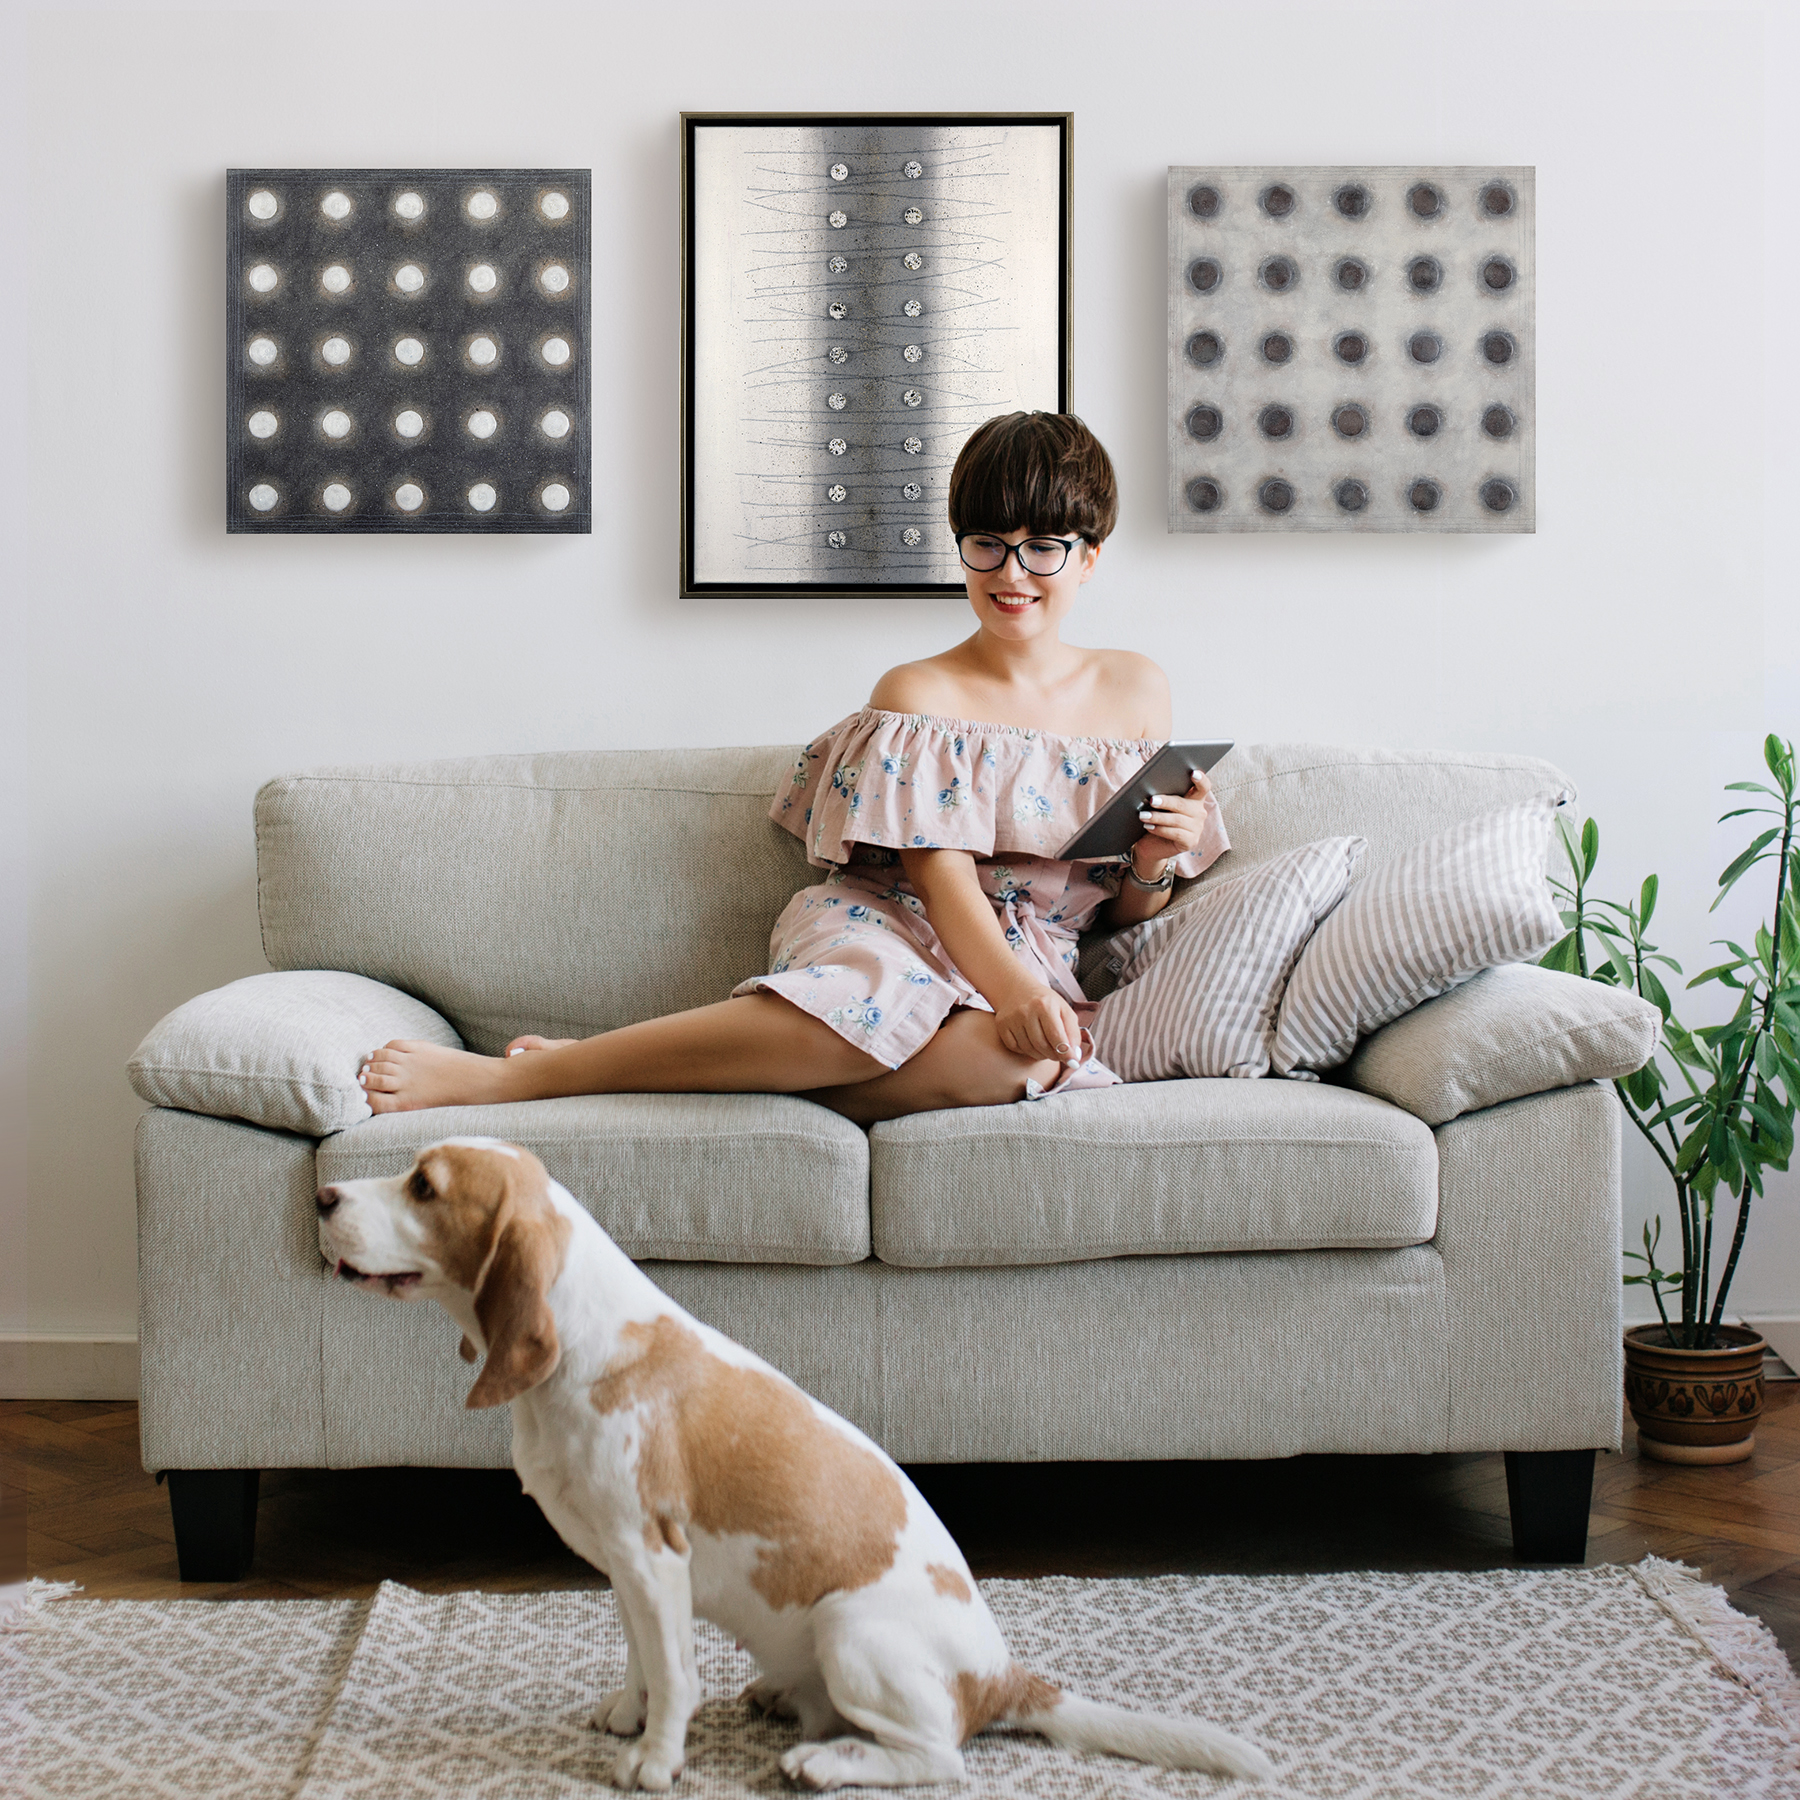 girl with dog and paintings